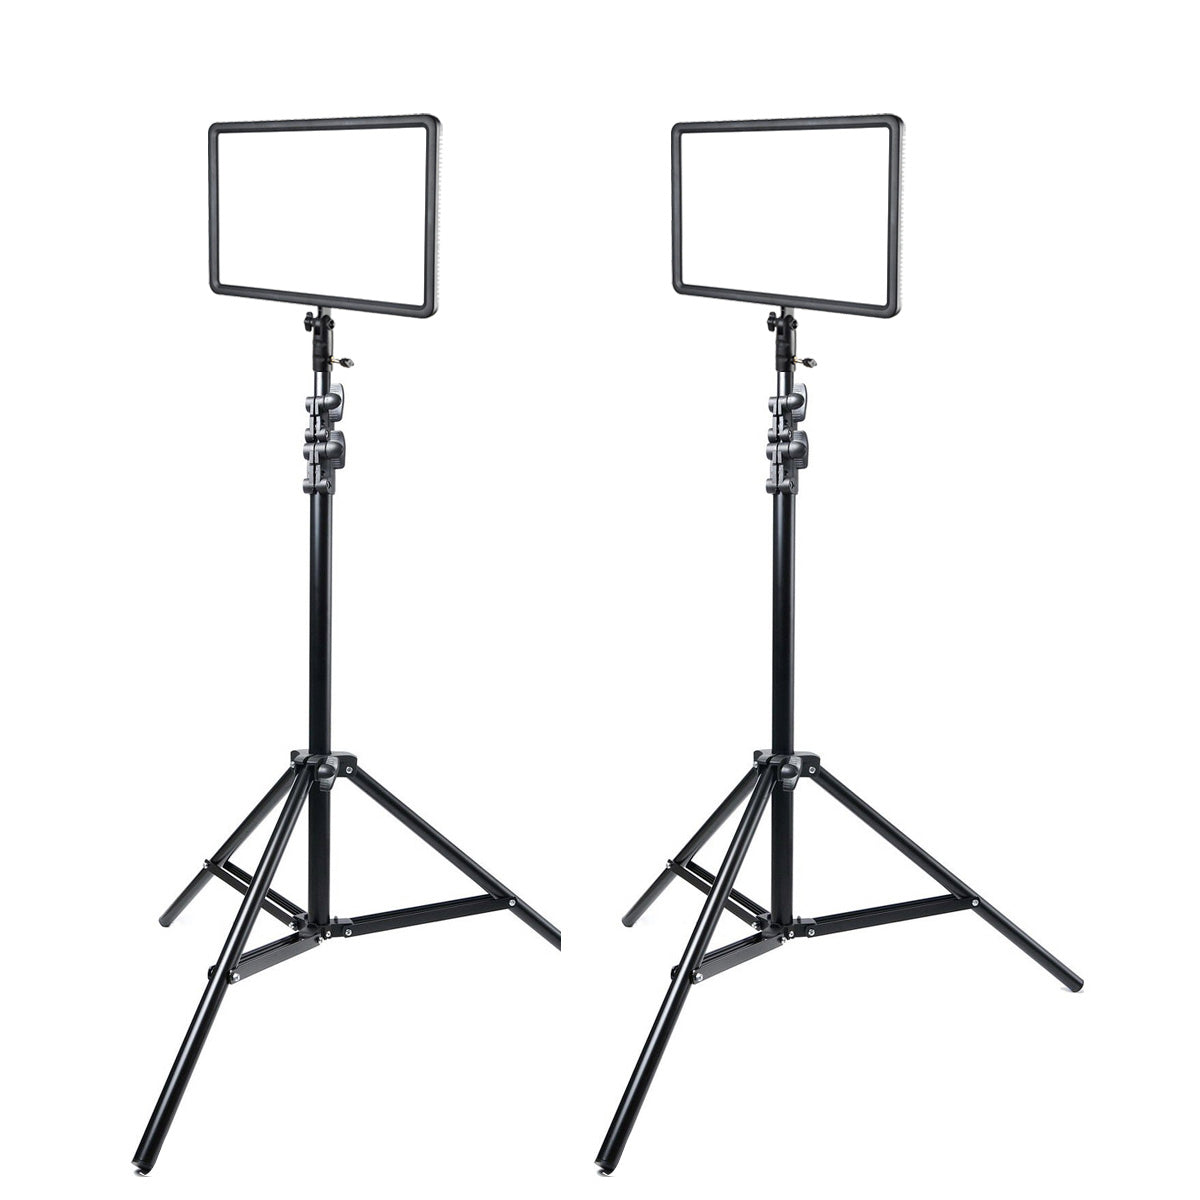 2x Godox LEDP260C Kit Ultra Slim LED Light 3300-5600k Adjustable For Camera Video with Stands